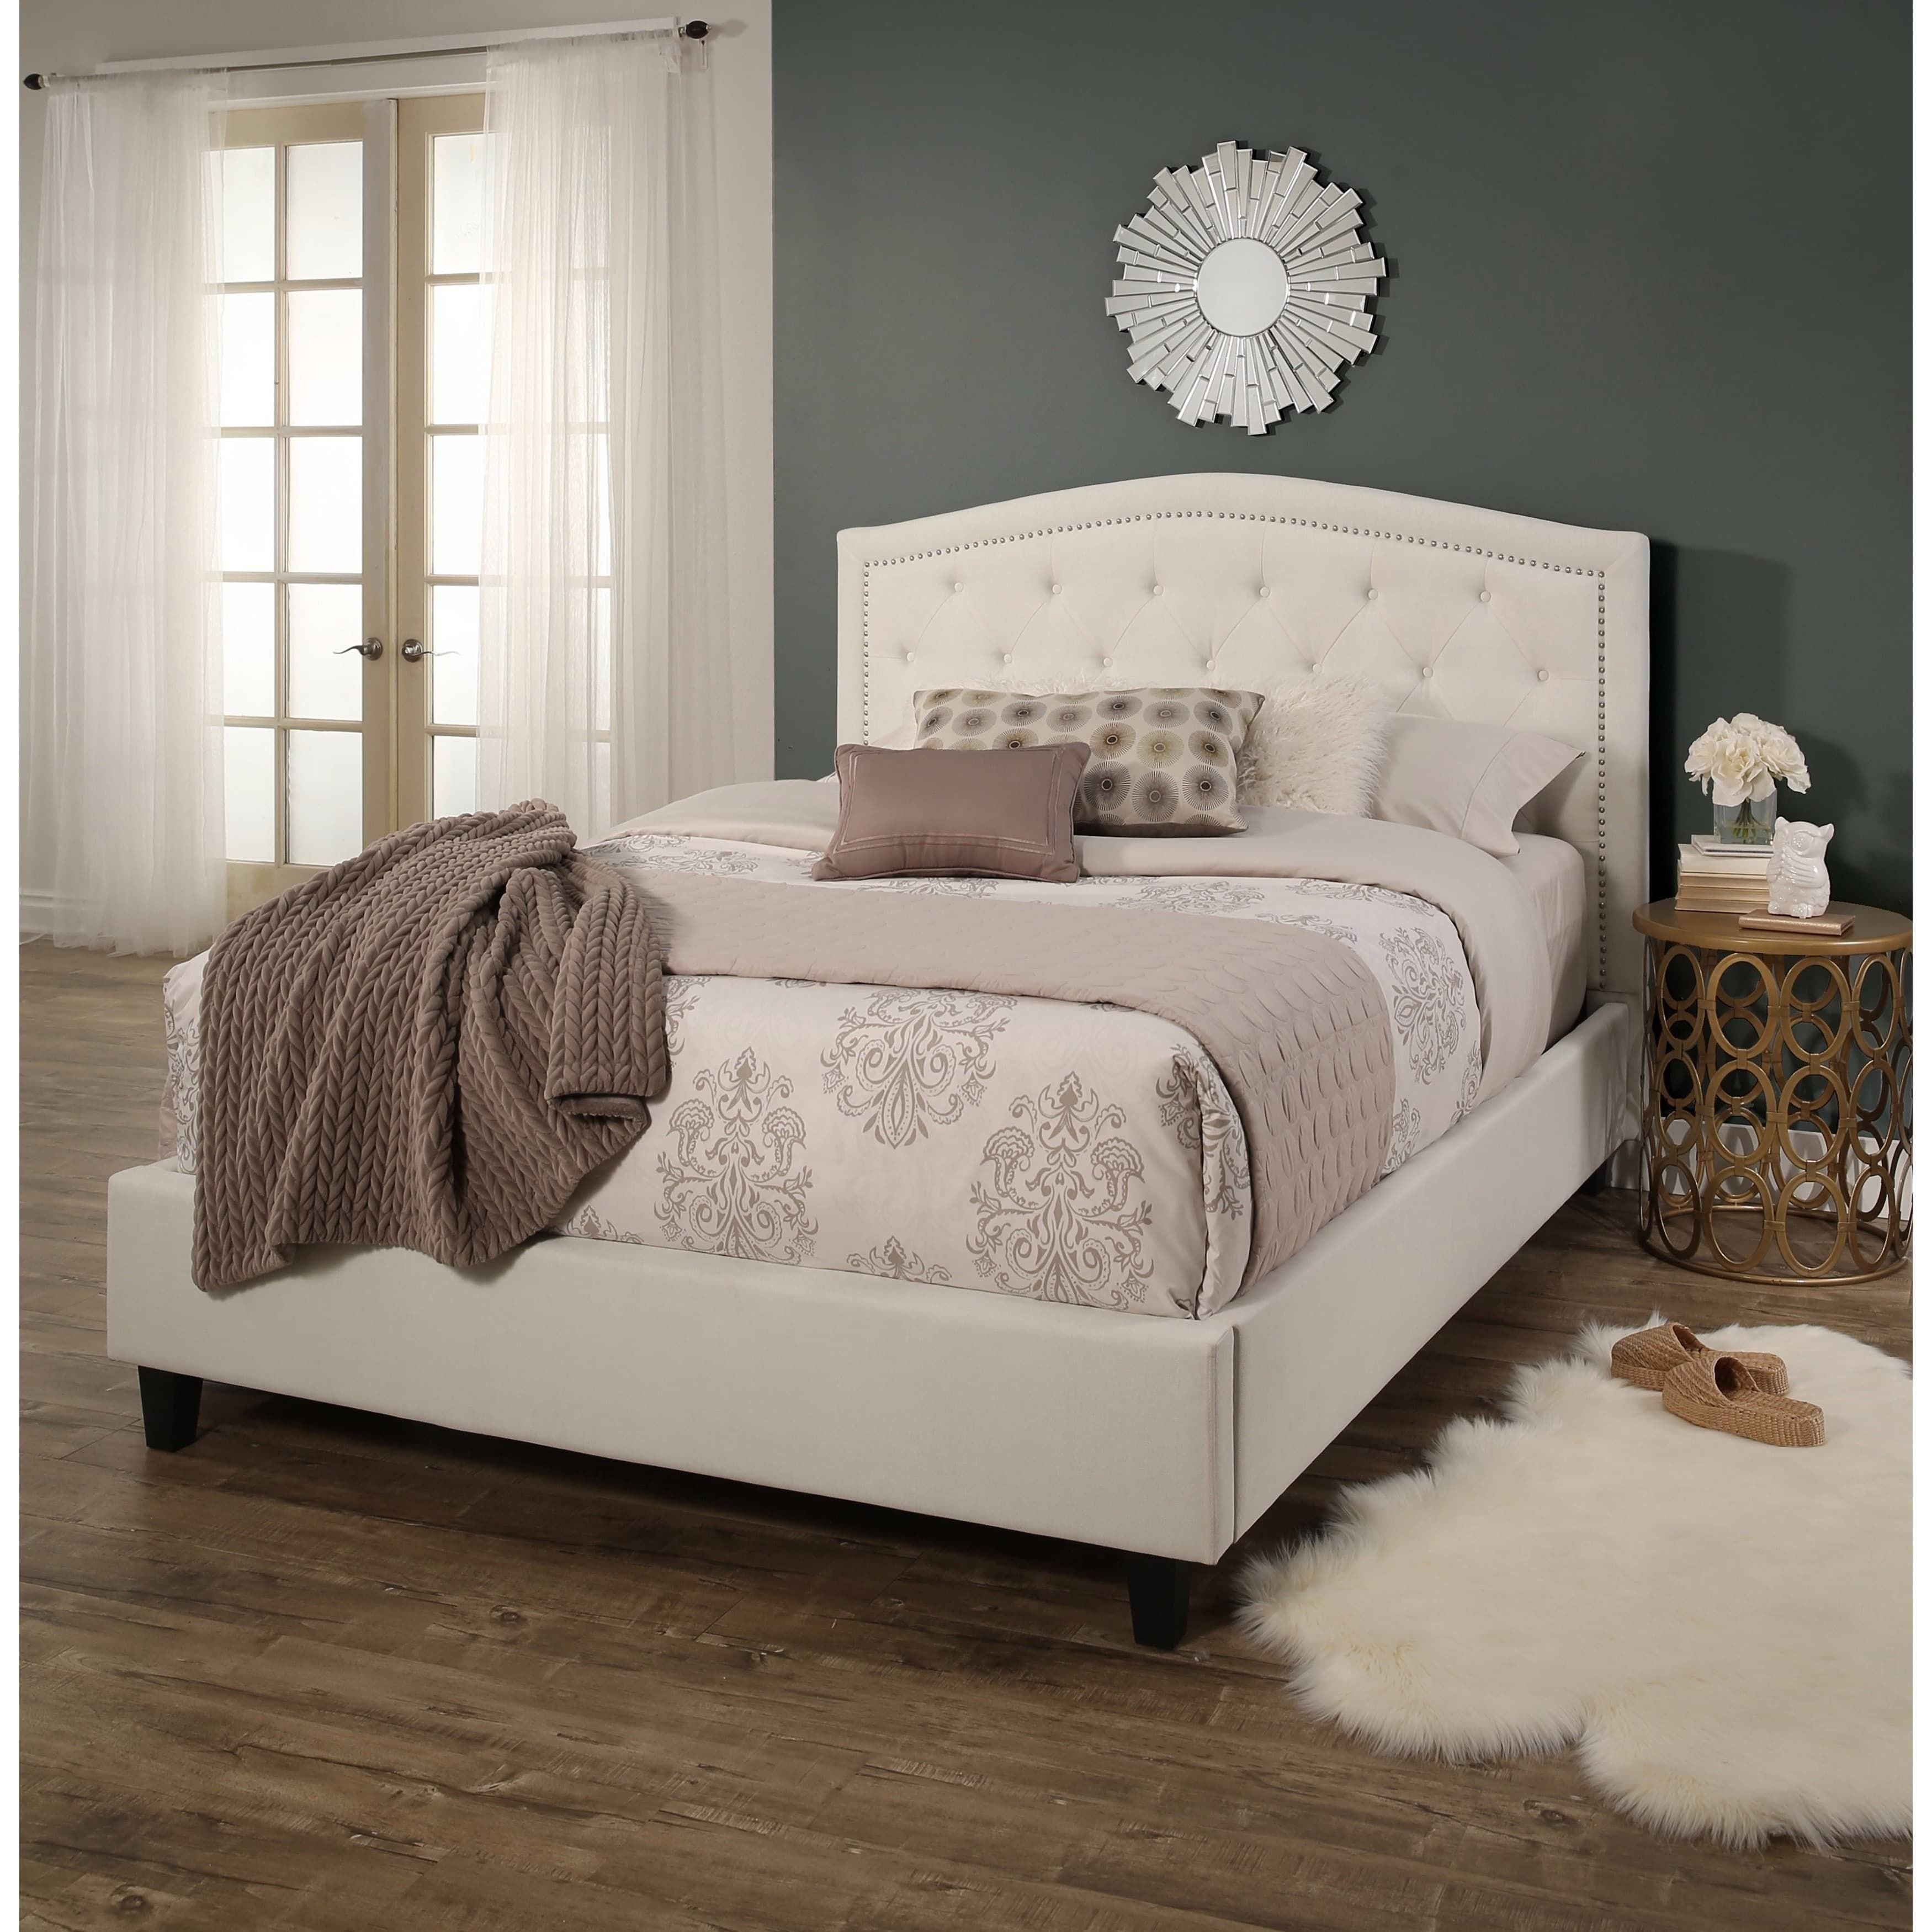 White Tufted Bedroom Set Fresh Virgil Upholstered Tufted Queen Bed by Christopher Knight